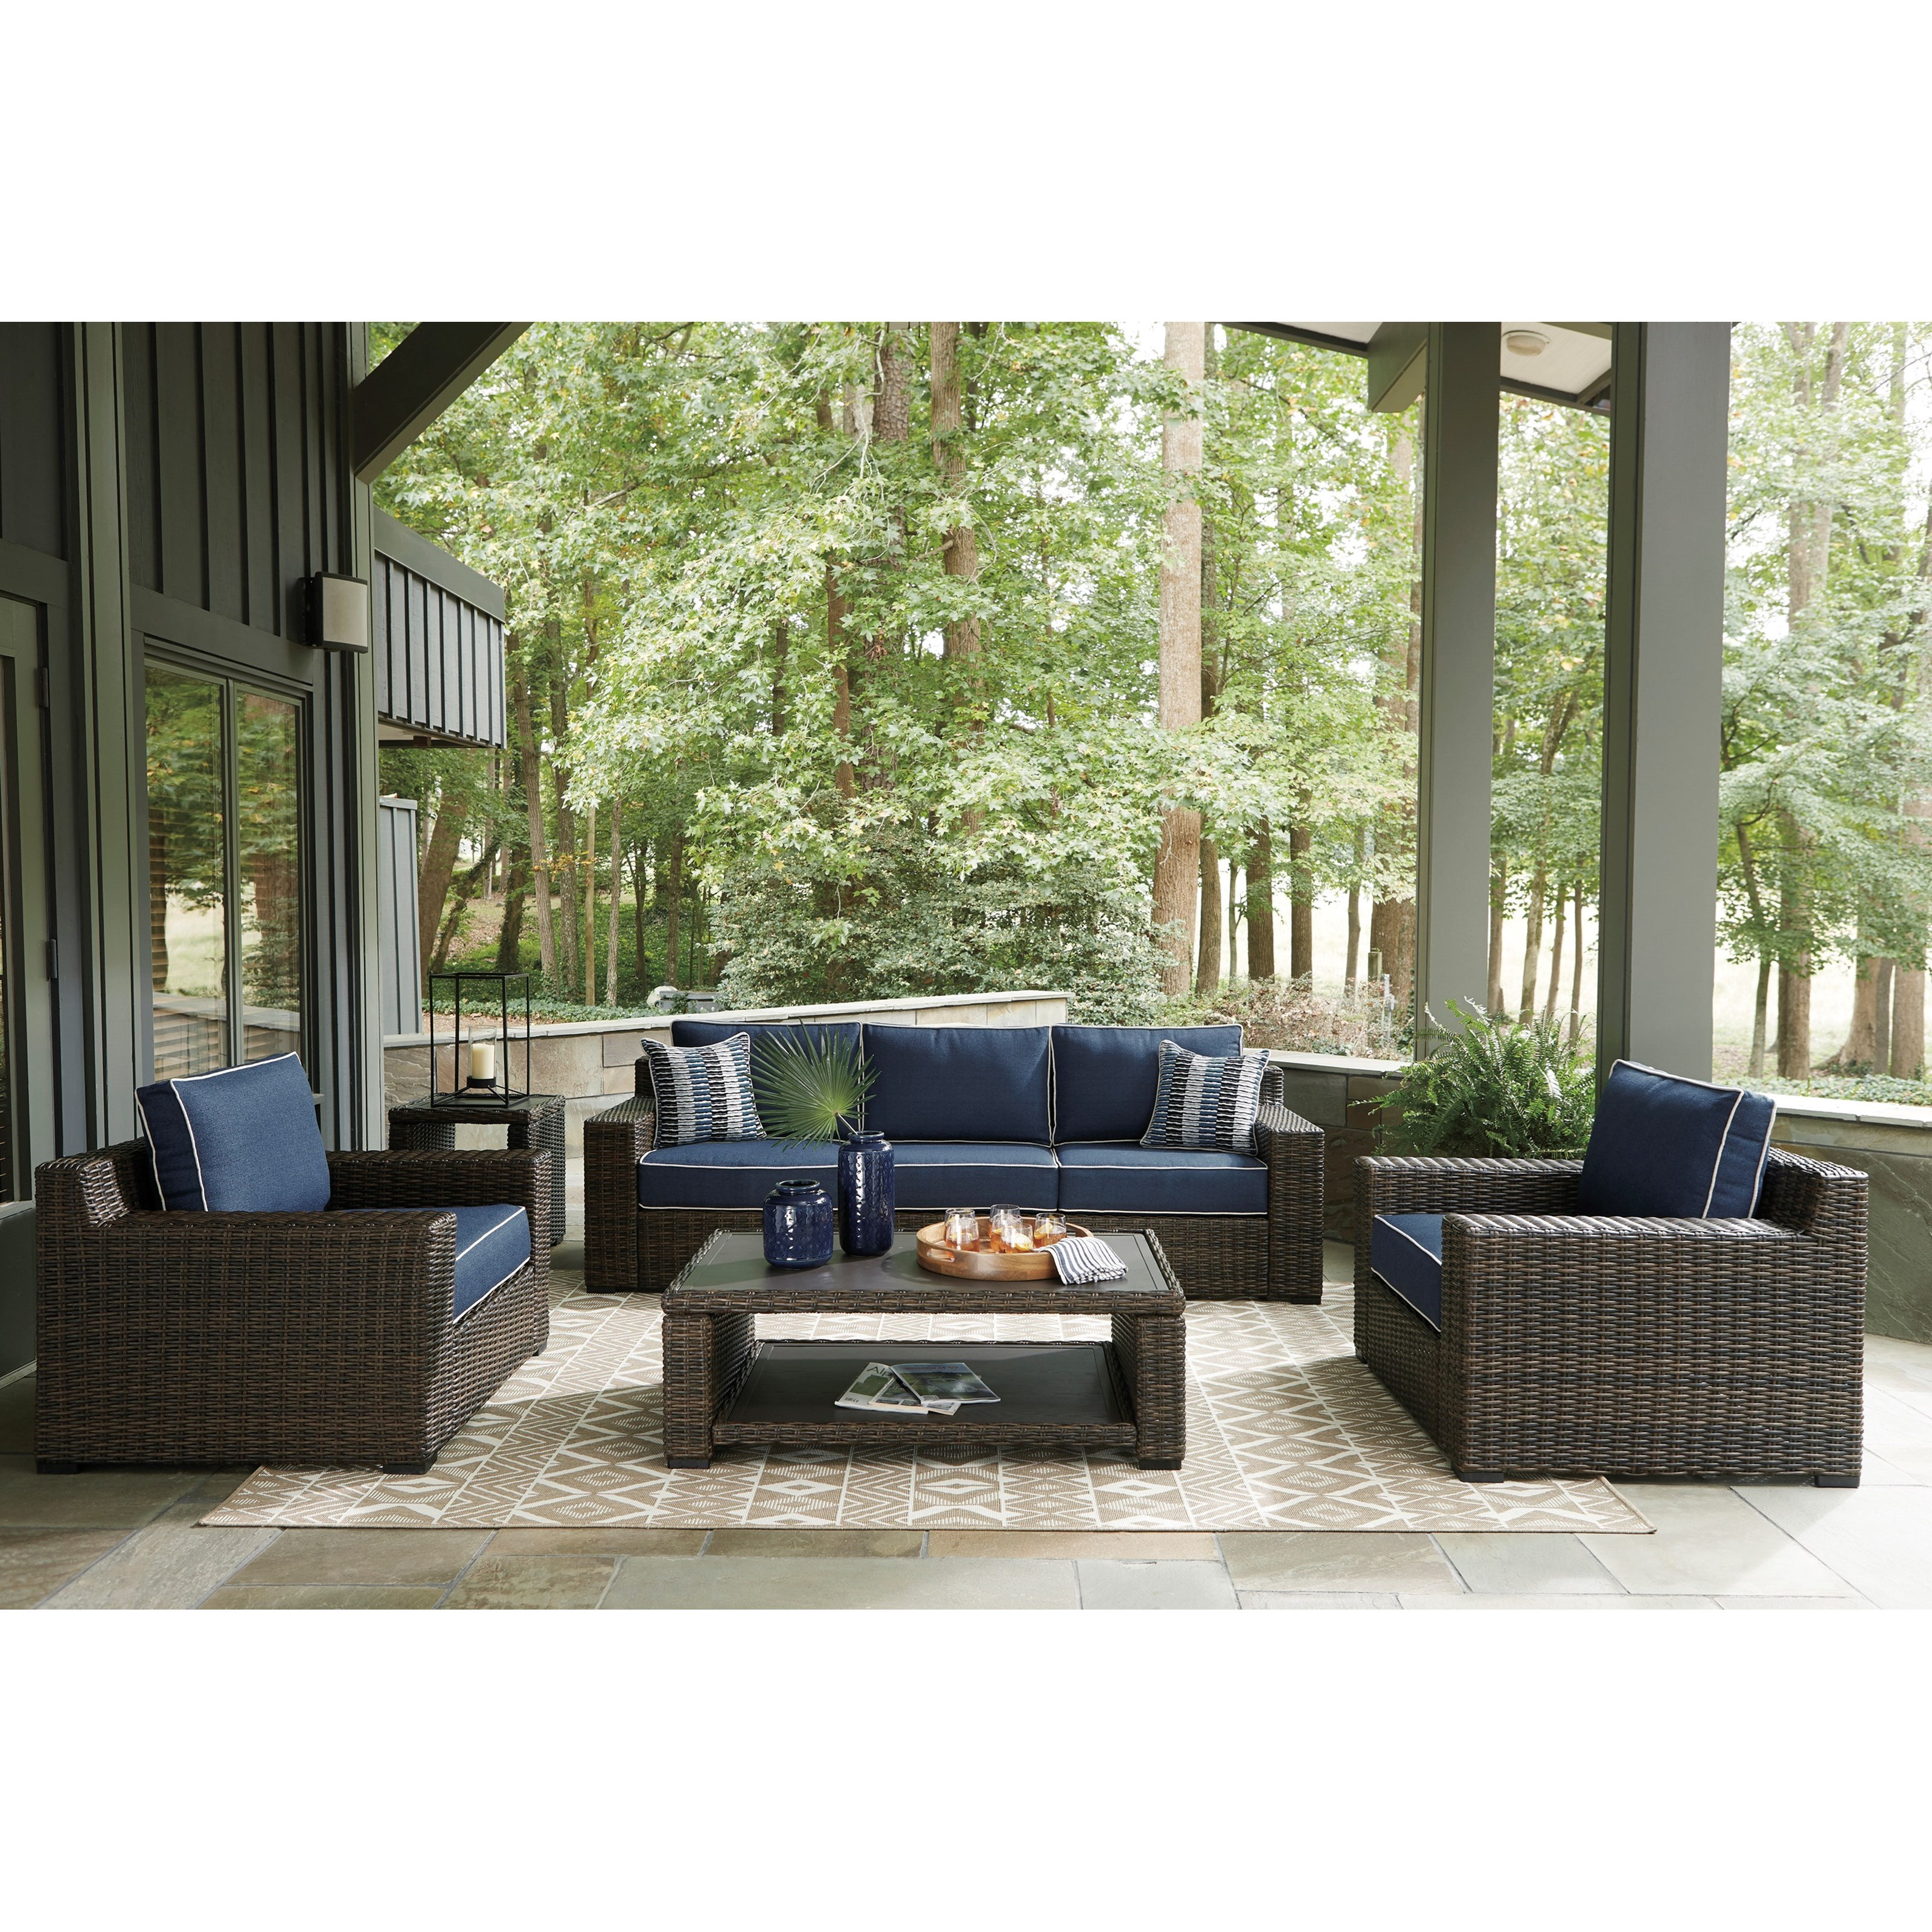 Grasson Lane Outdoor Conversation Set by Ashley (Signature Design) at Johnny Janosik